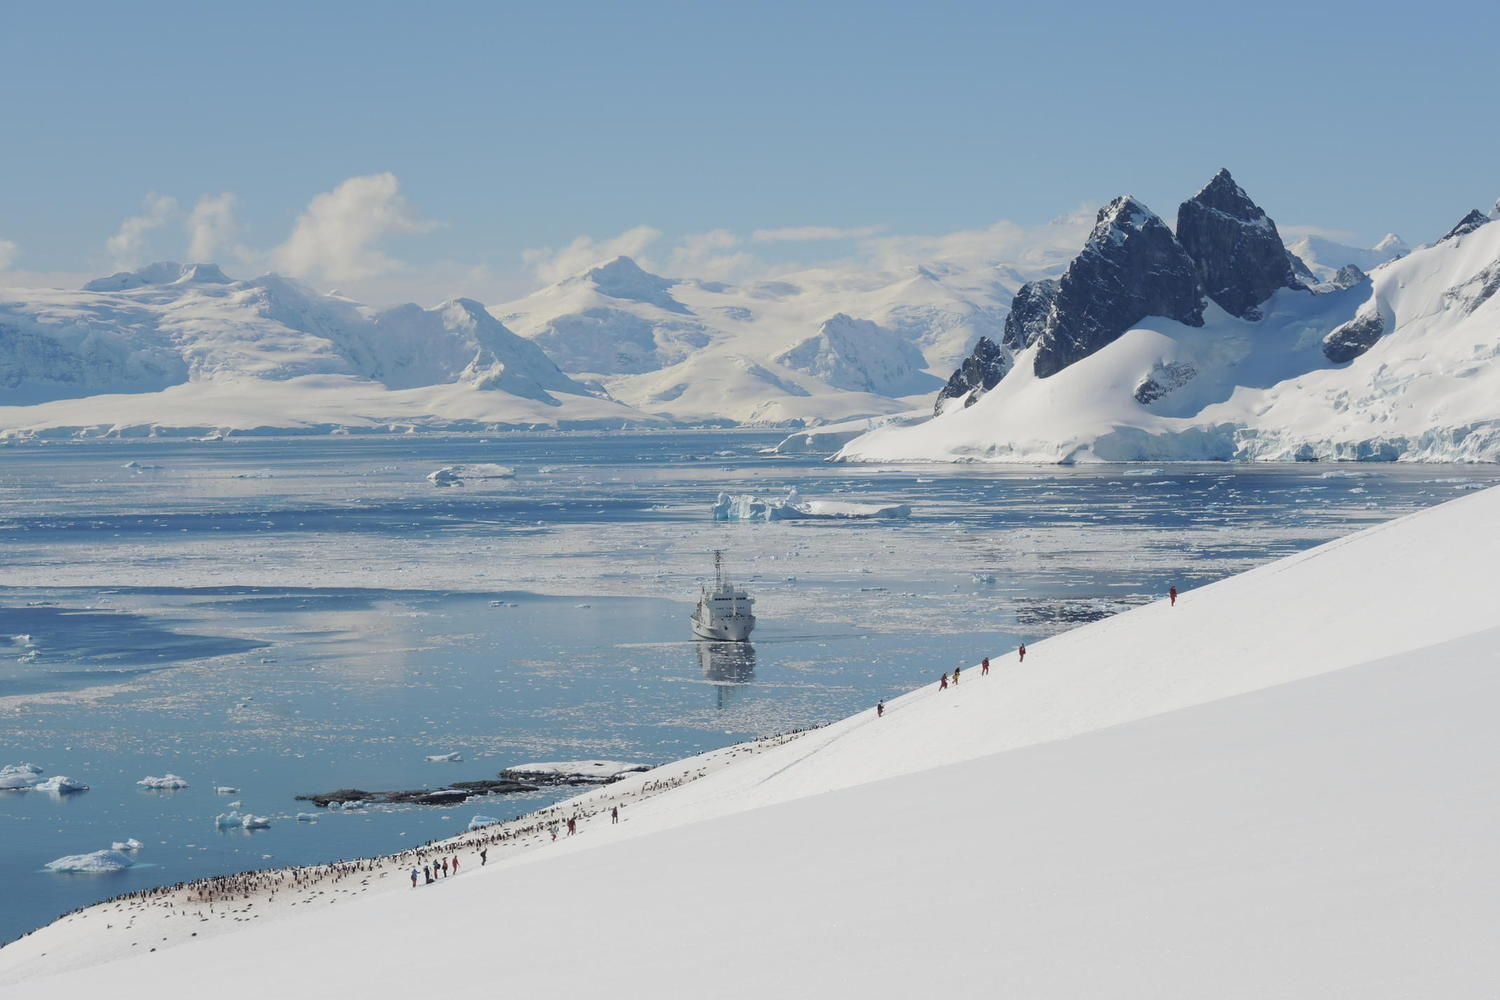 Hikers and penguins set off up hill as the Akademik Ioffe looks on from the bay